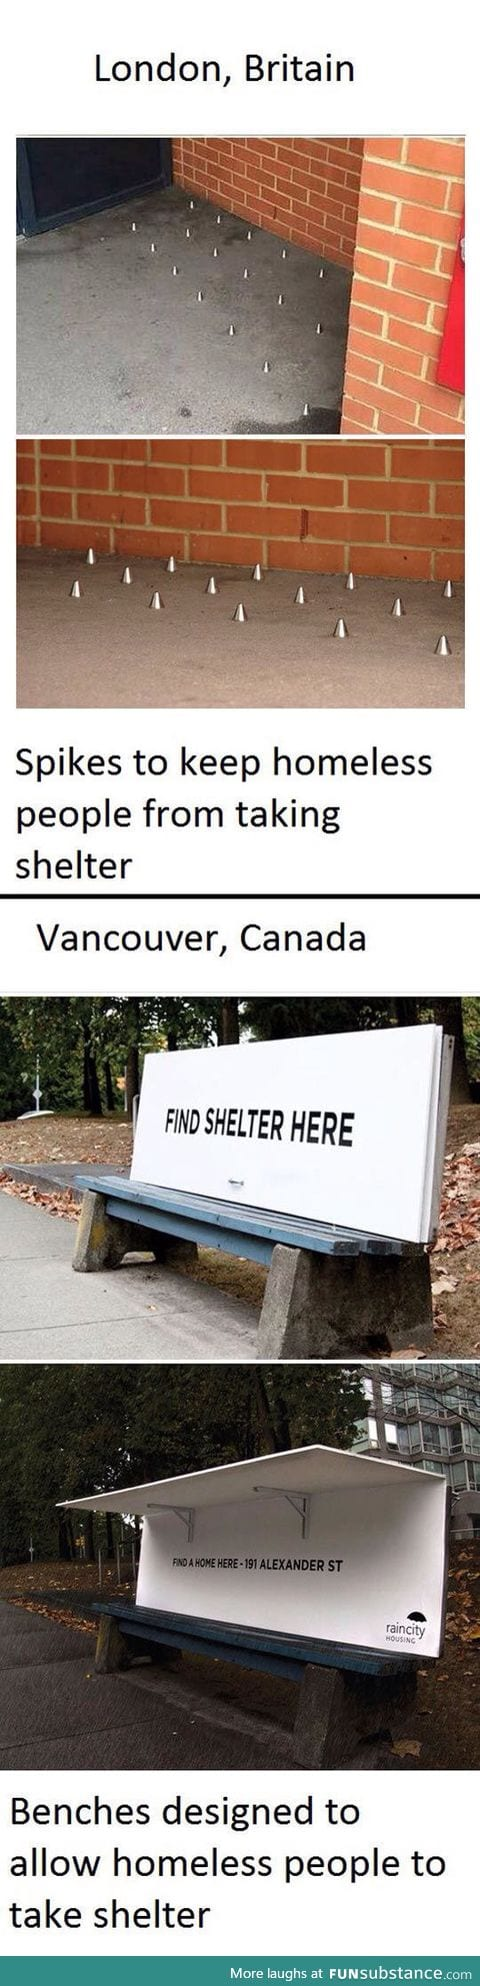 Difference between Canada and Britain